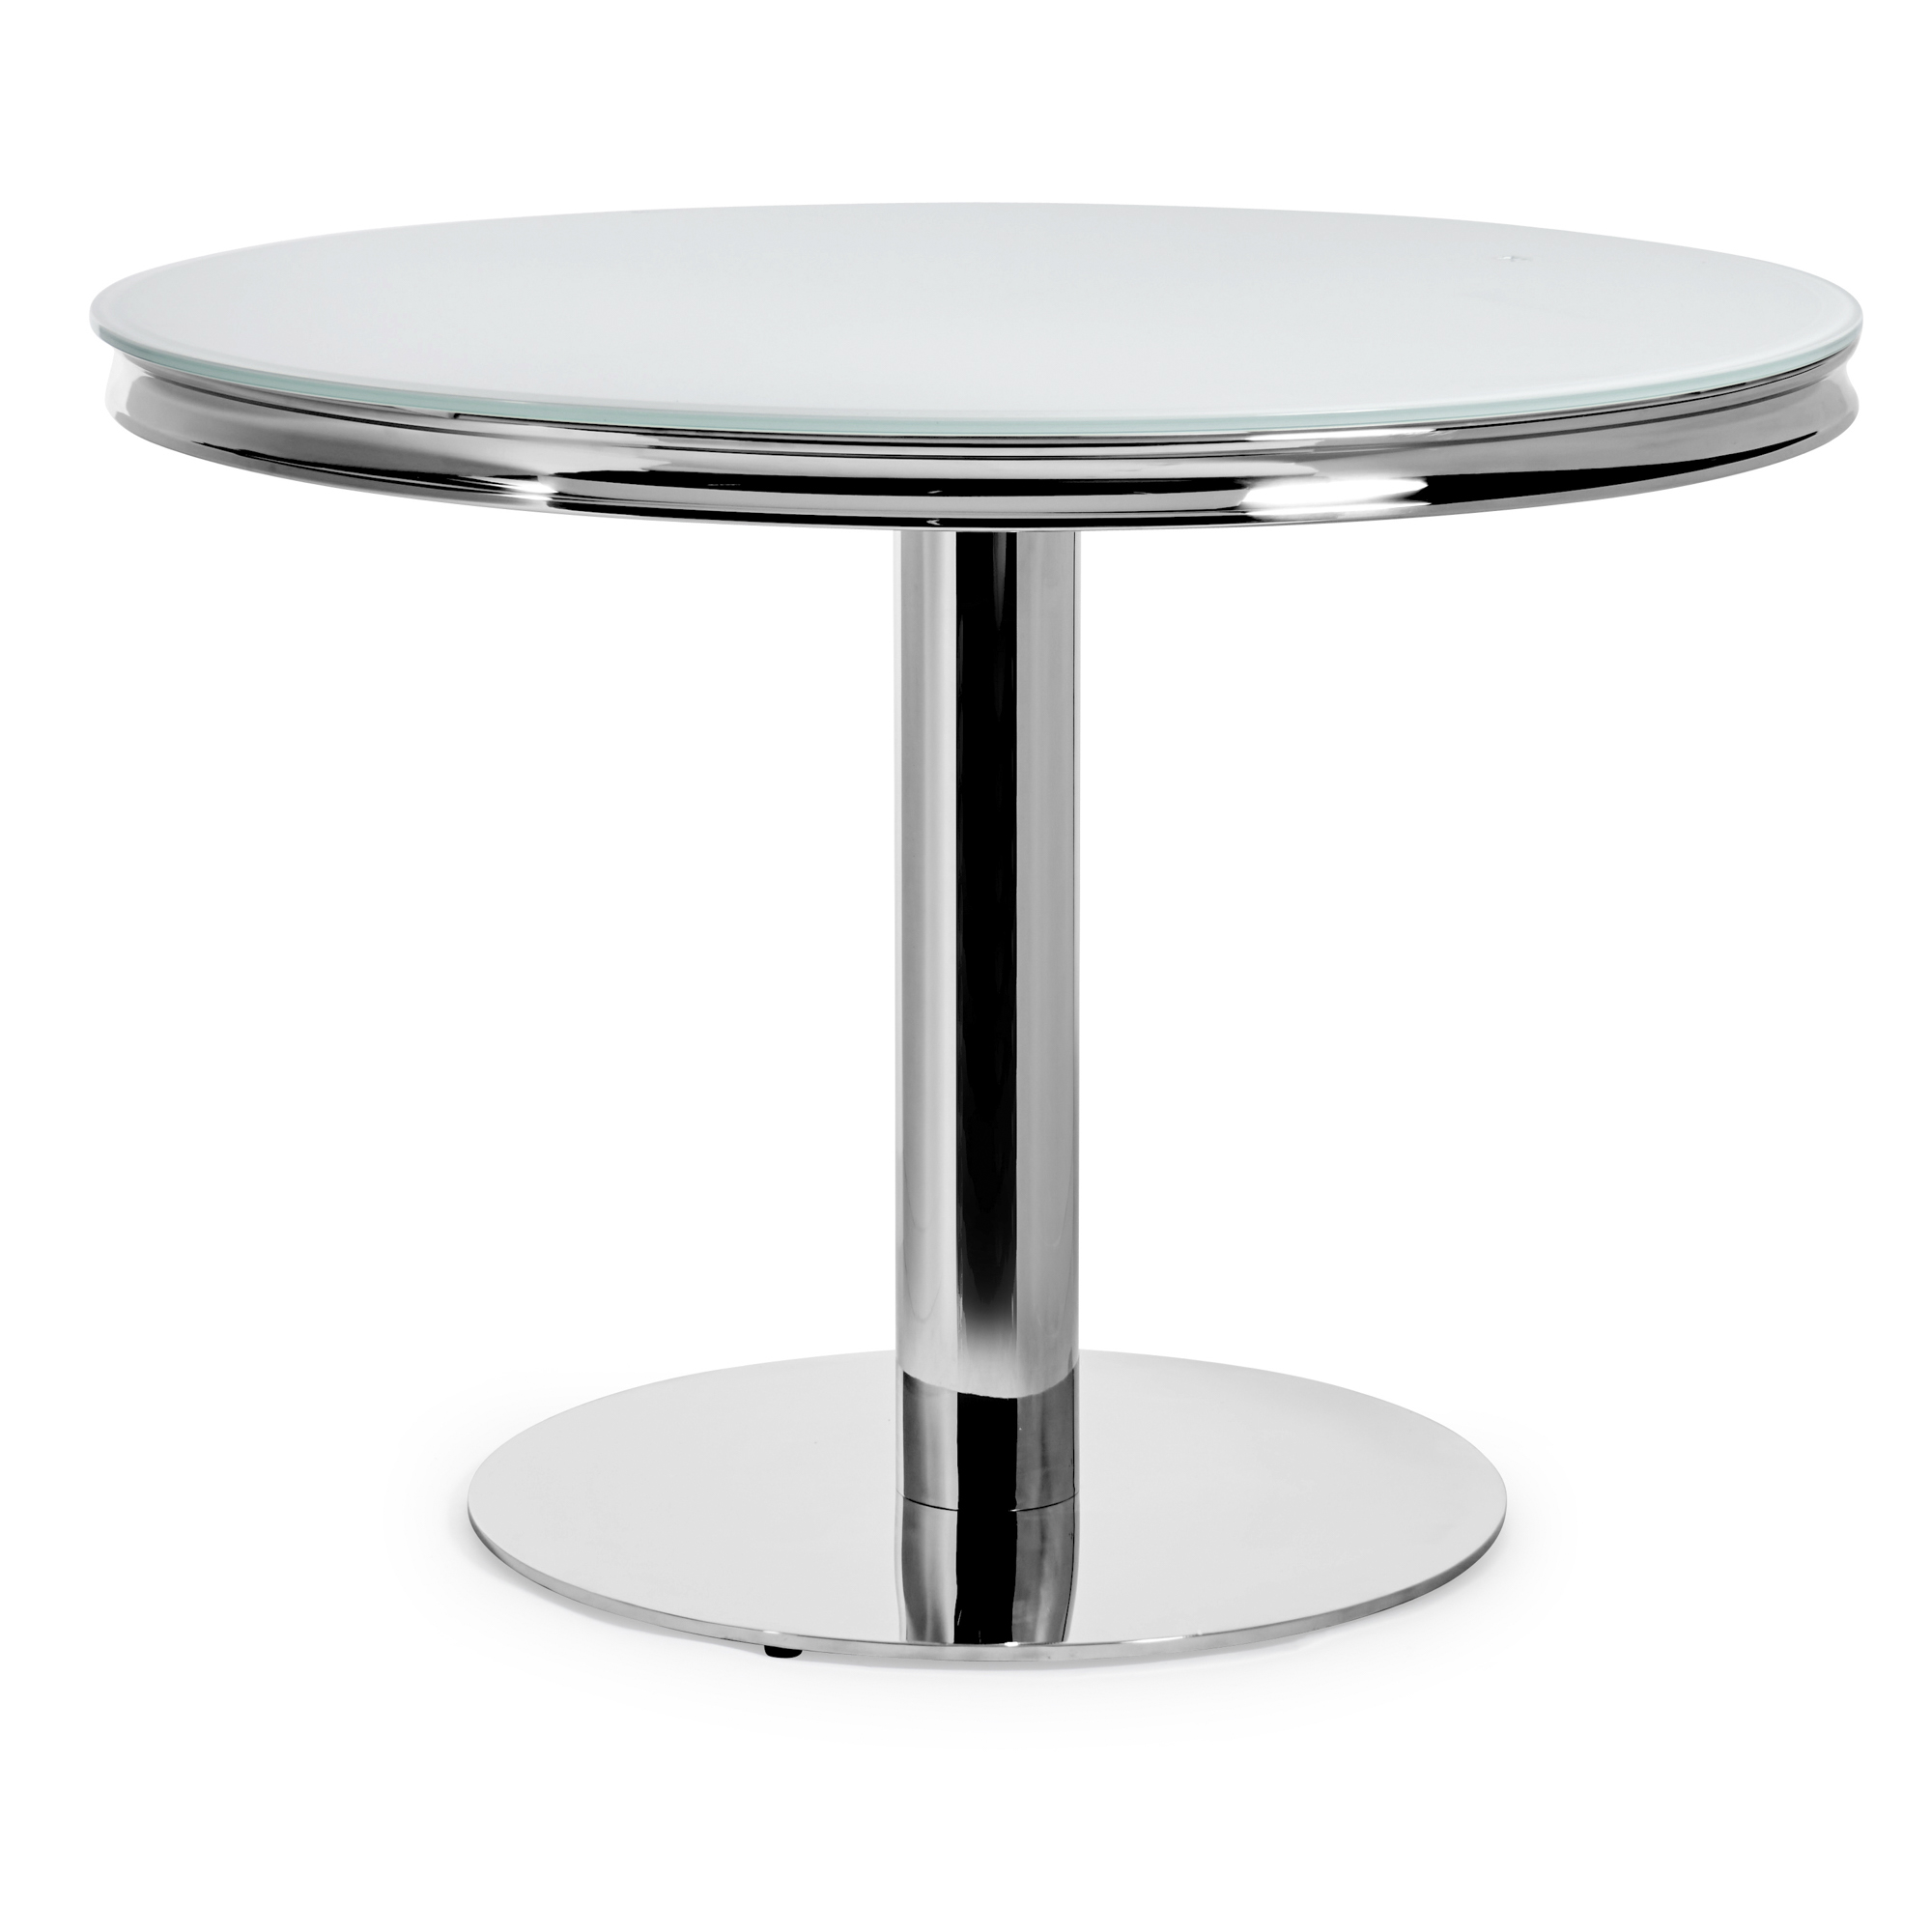 Small Louis 1.06m Round Dining Table – White Glass